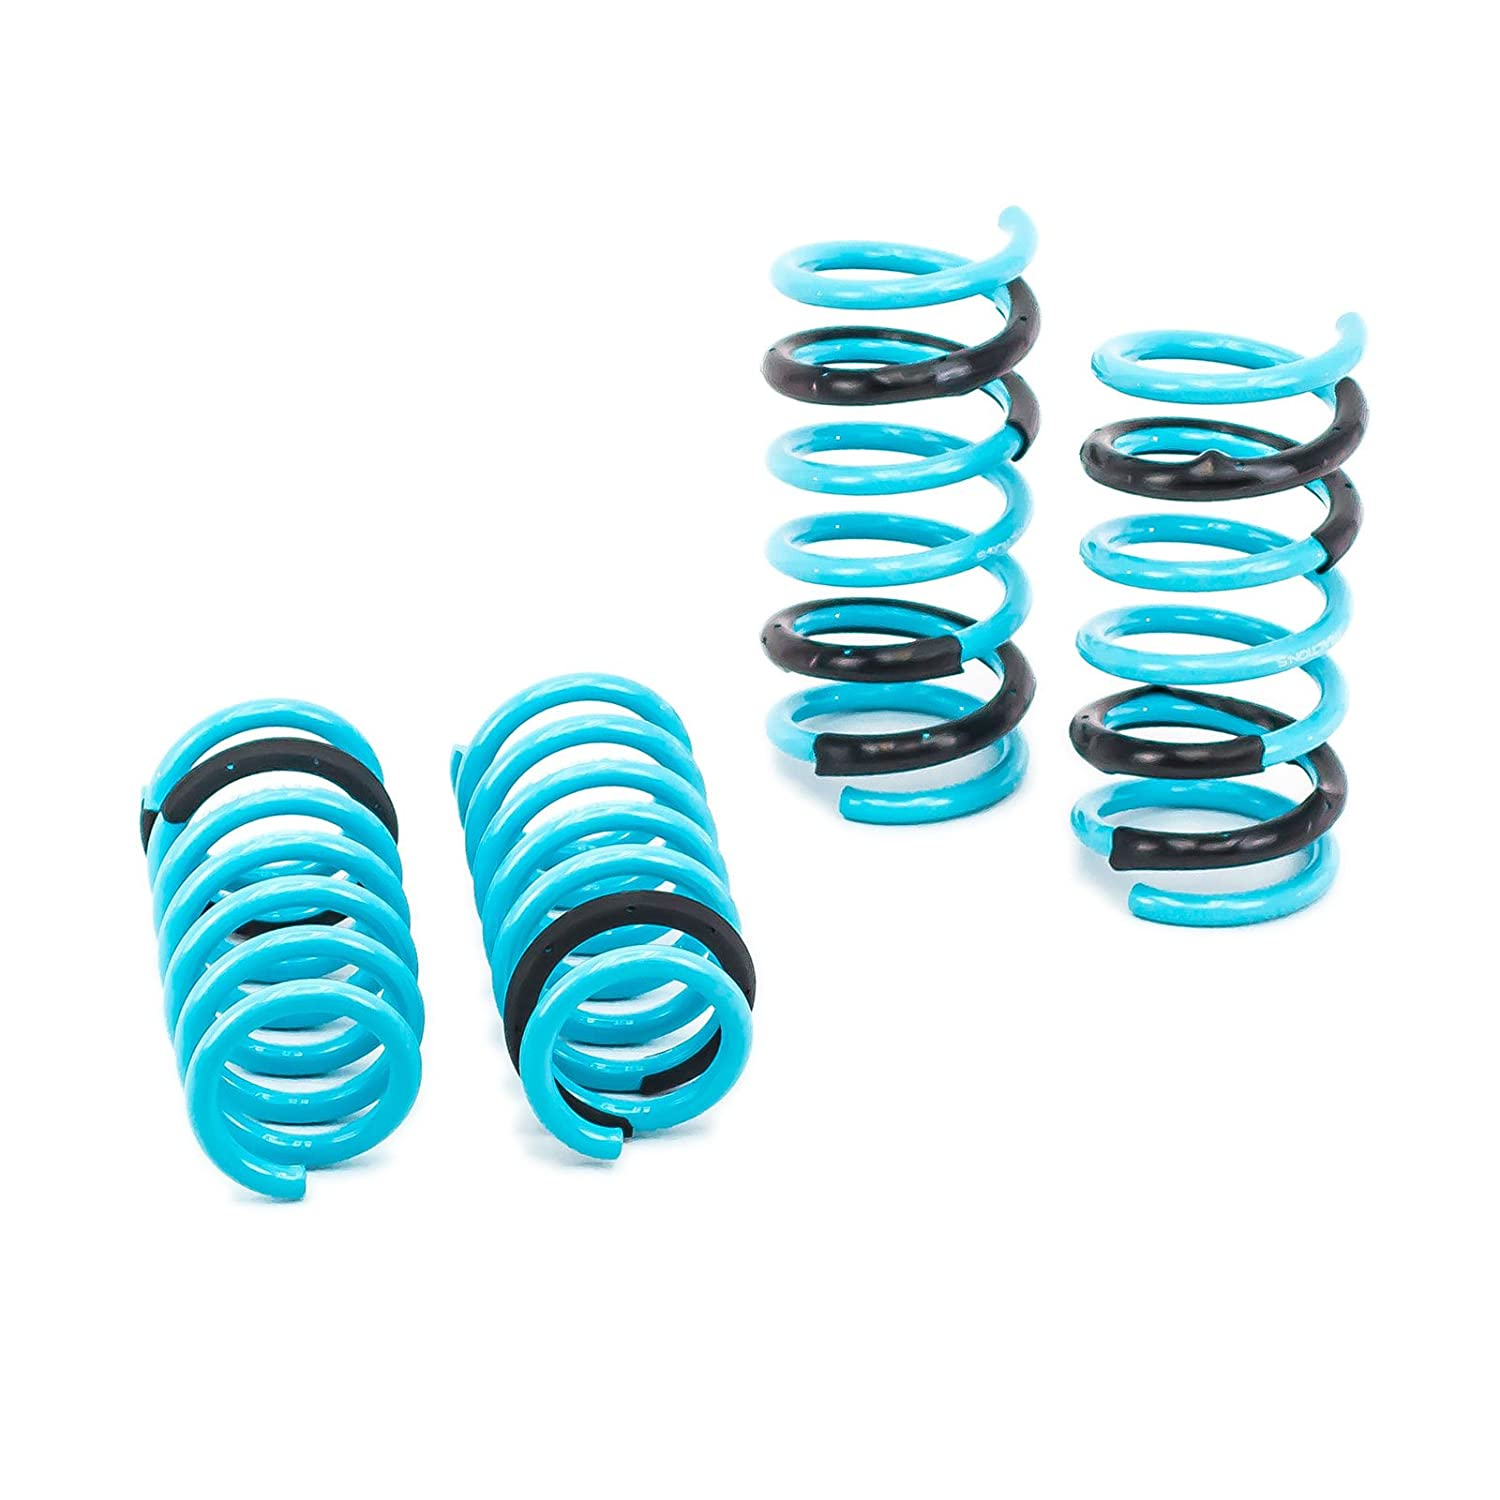 Set of 4 Infiniti G35 Coupe V35 Godspeed LS-TS-II-0001-A Traction-S Performance Lowering Springs 2003-2007 RWD